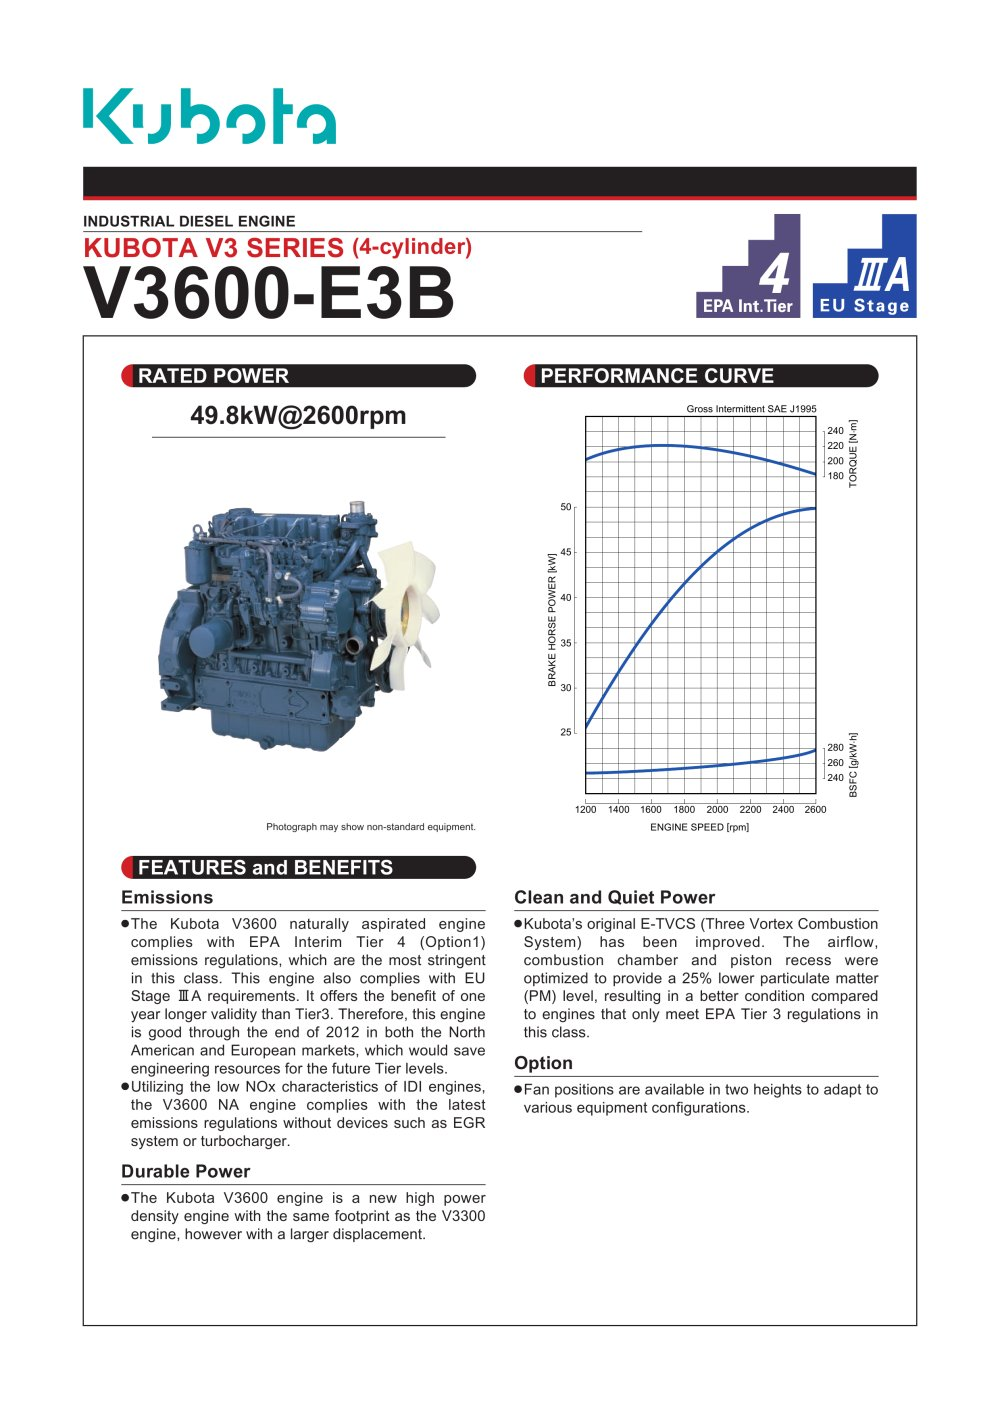 V3600-E3B - 1 / 2 Pages